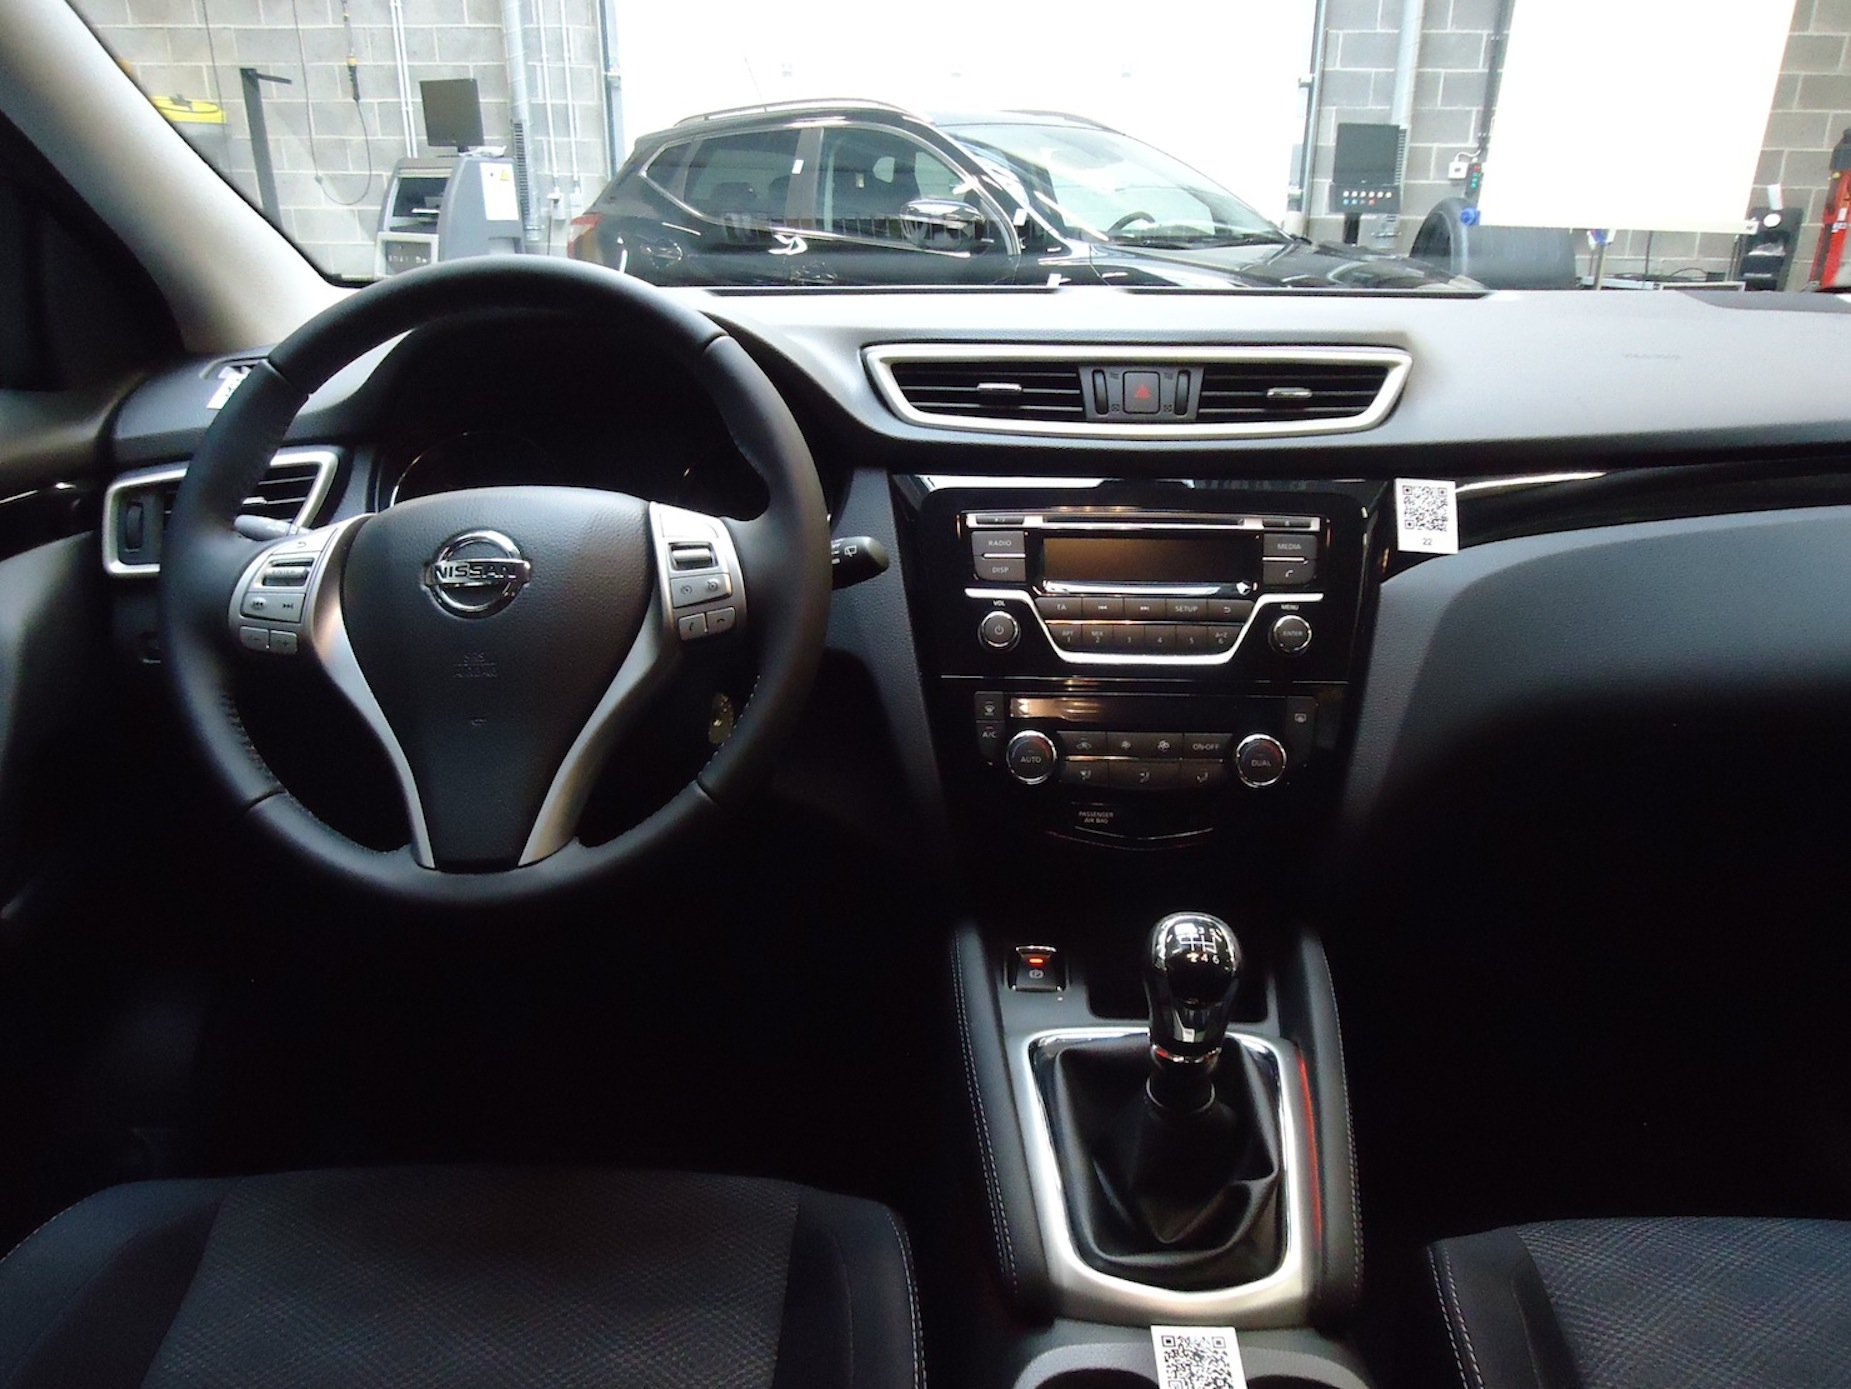 Nissan qashqai photo interieur of interieur qashqai 2015 for Interieur qashqai 2014